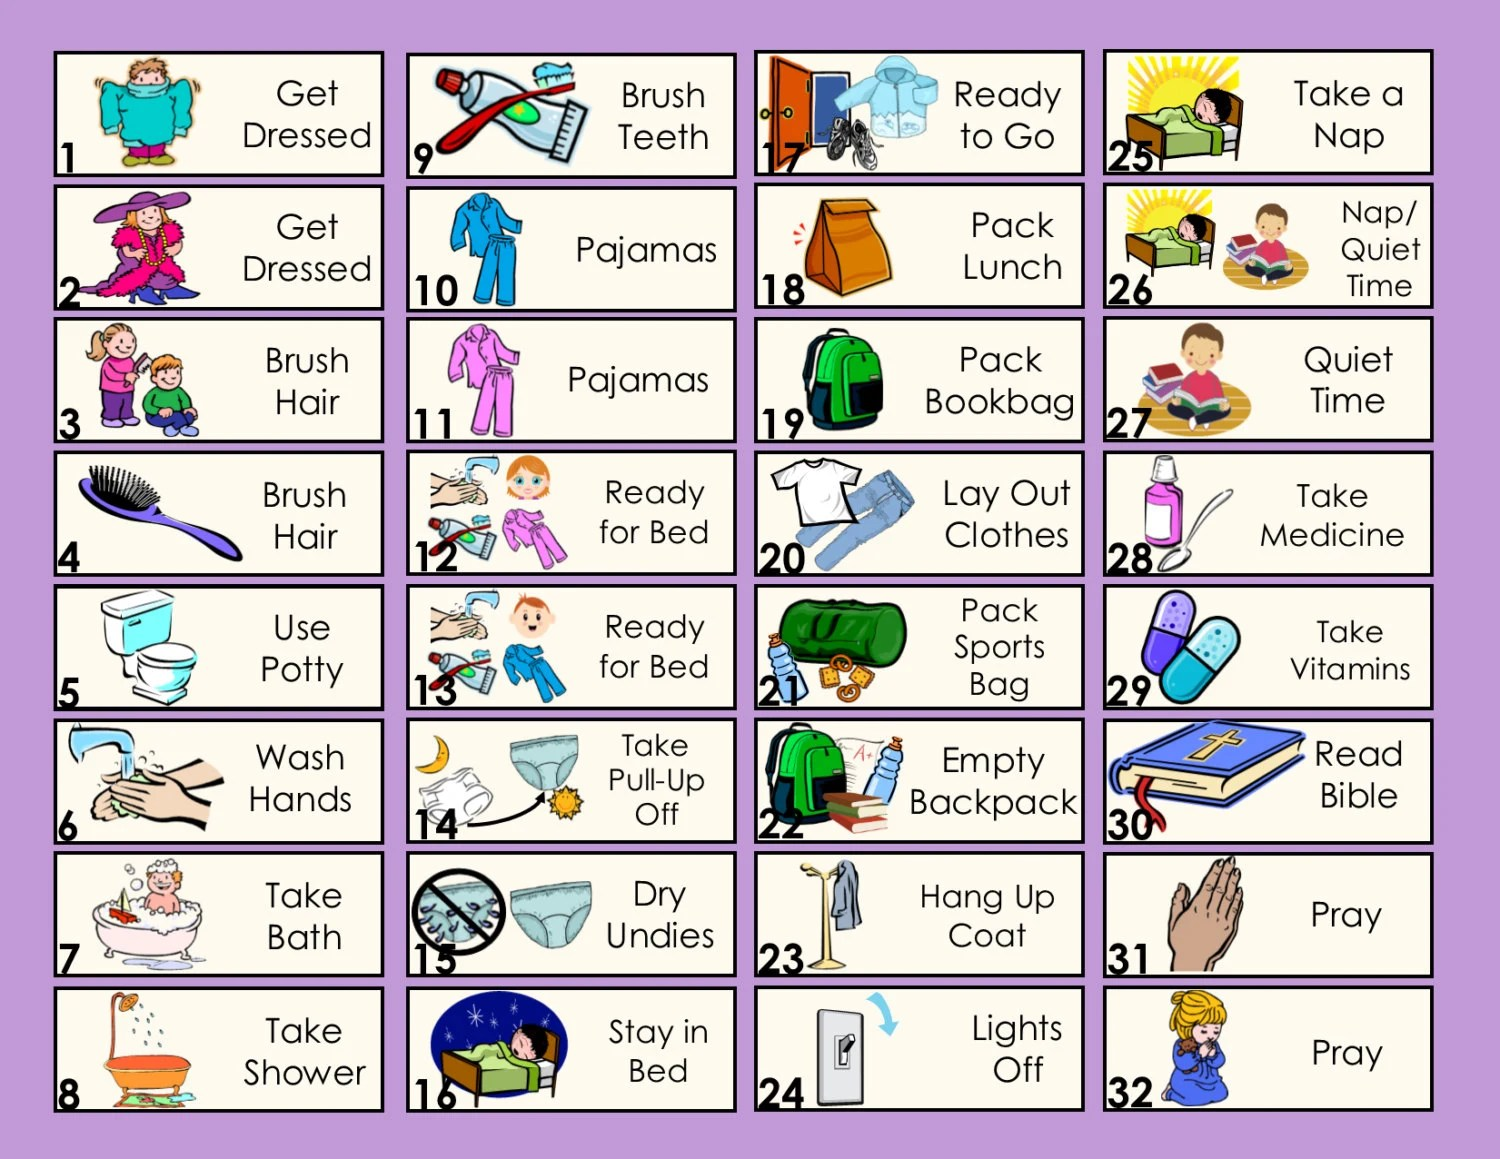 5 Extra Chore Tokens For Allowance Chore Chart Or To Do List